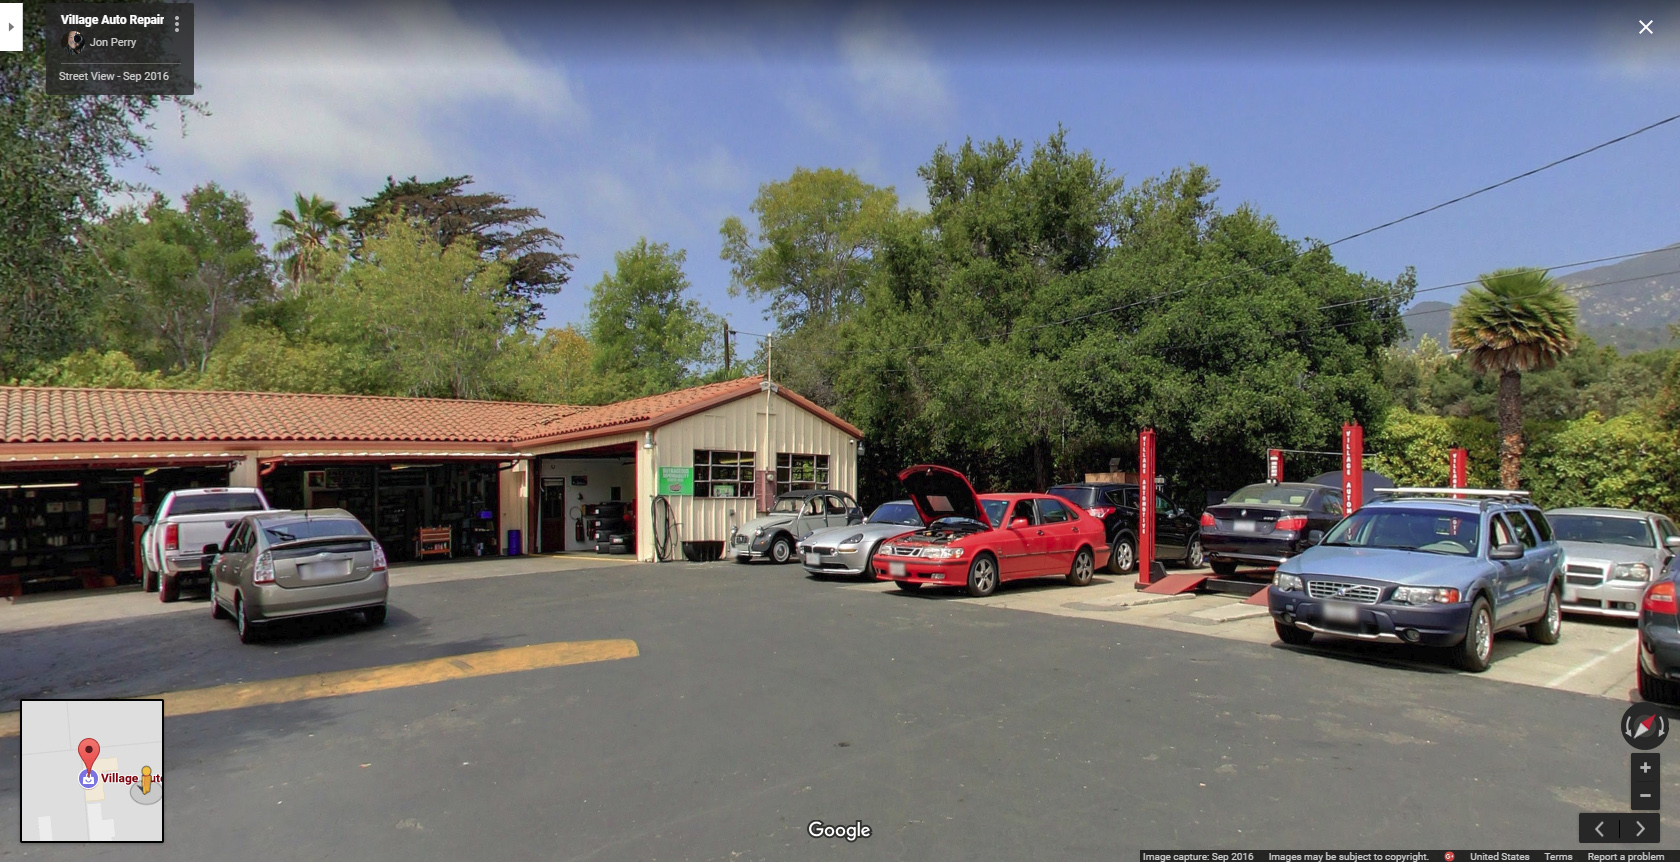 Montecito Village Auto Repair